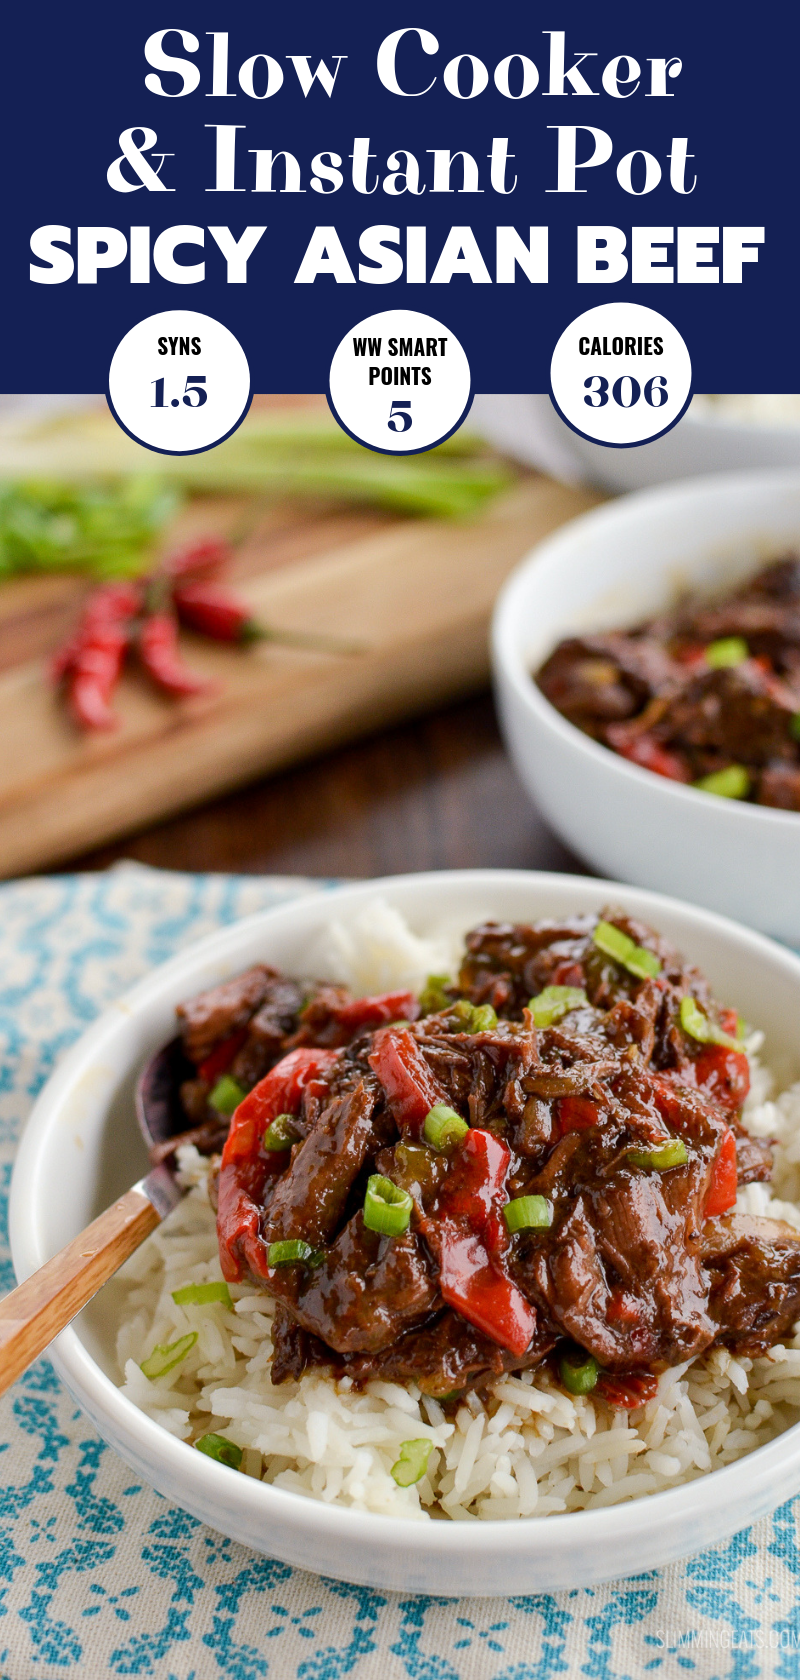 slow cooker spicy Asian Beef pin image